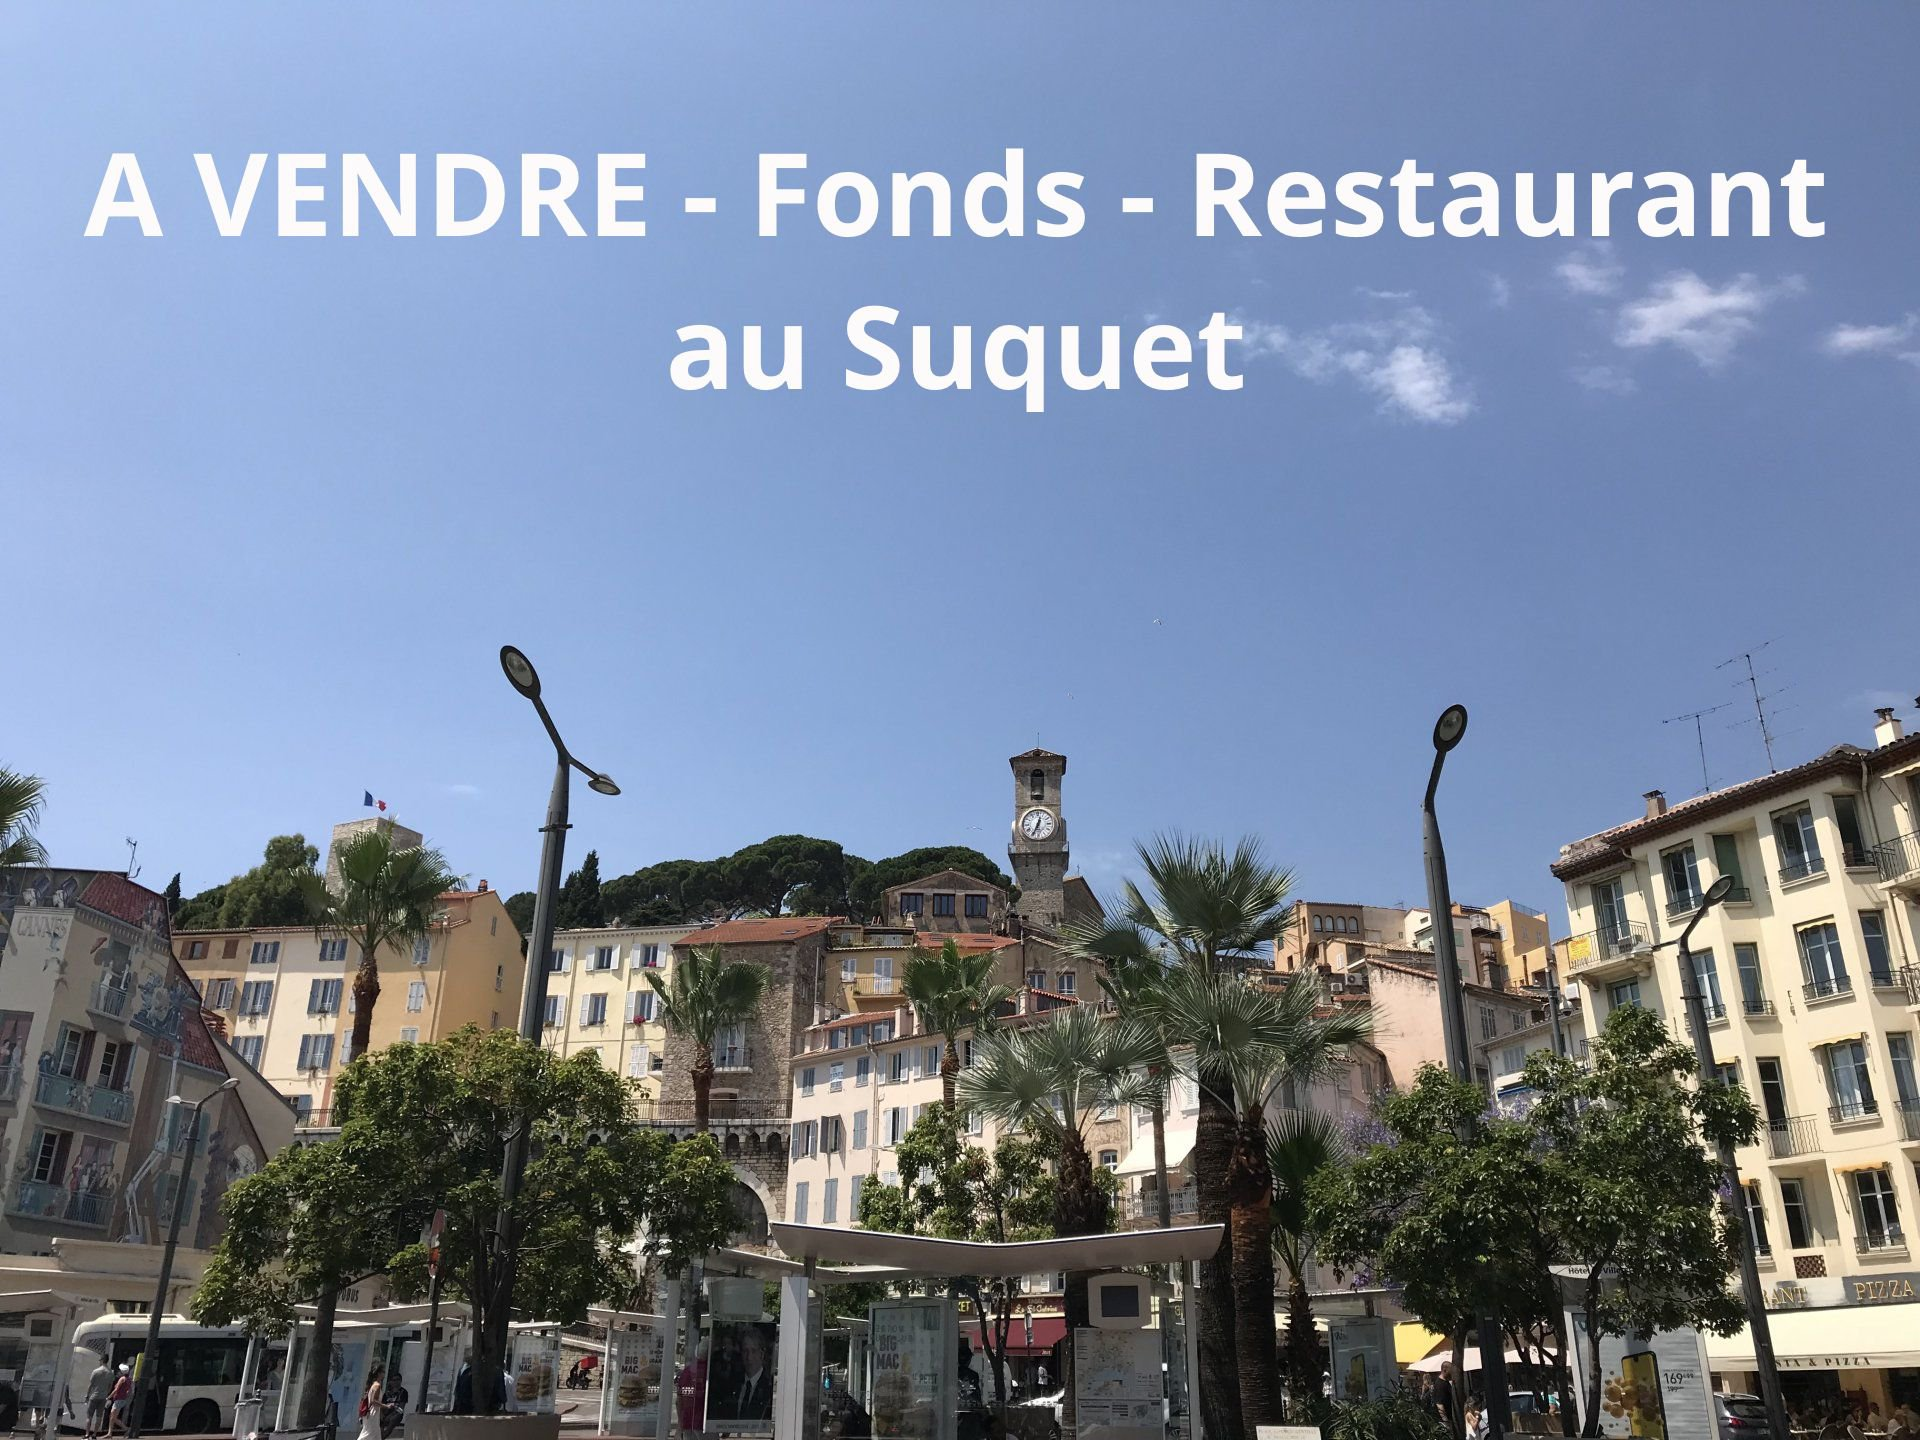 FONDS DE COMMERCE restaurant au cœur du Suquet